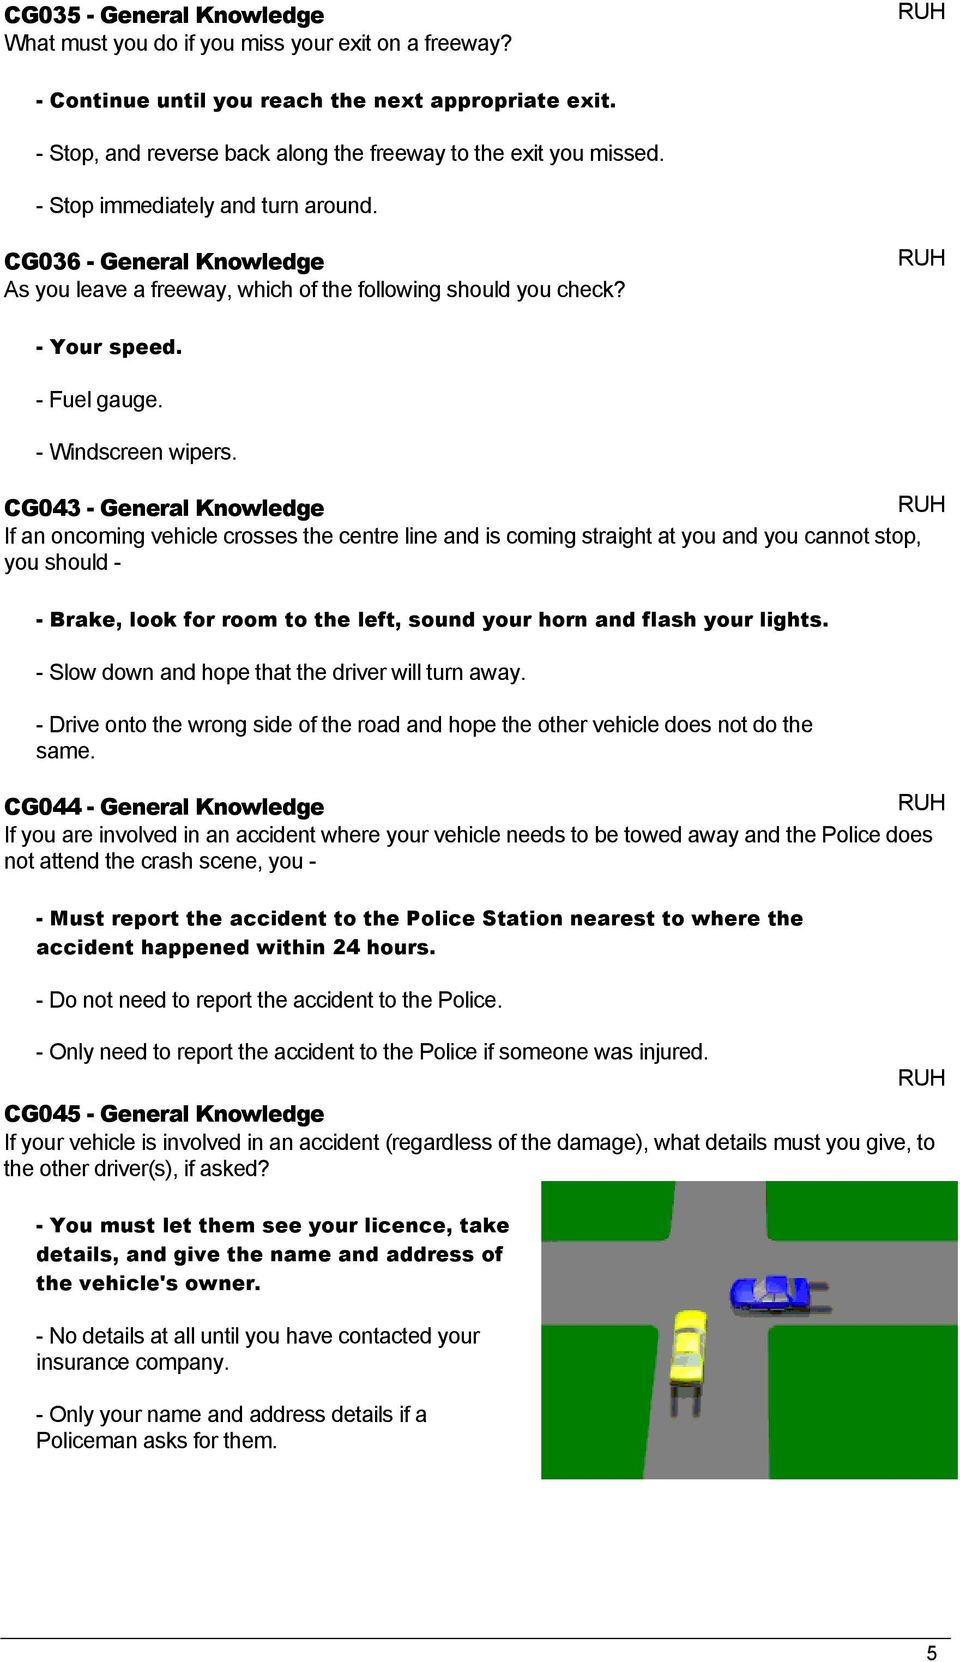 CG043 - General Knowledge If an oncoming vehicle crosses the centre line and is coming straight at you and you cannot stop, you should - - Brake, look for room to the left, sound your horn and flash